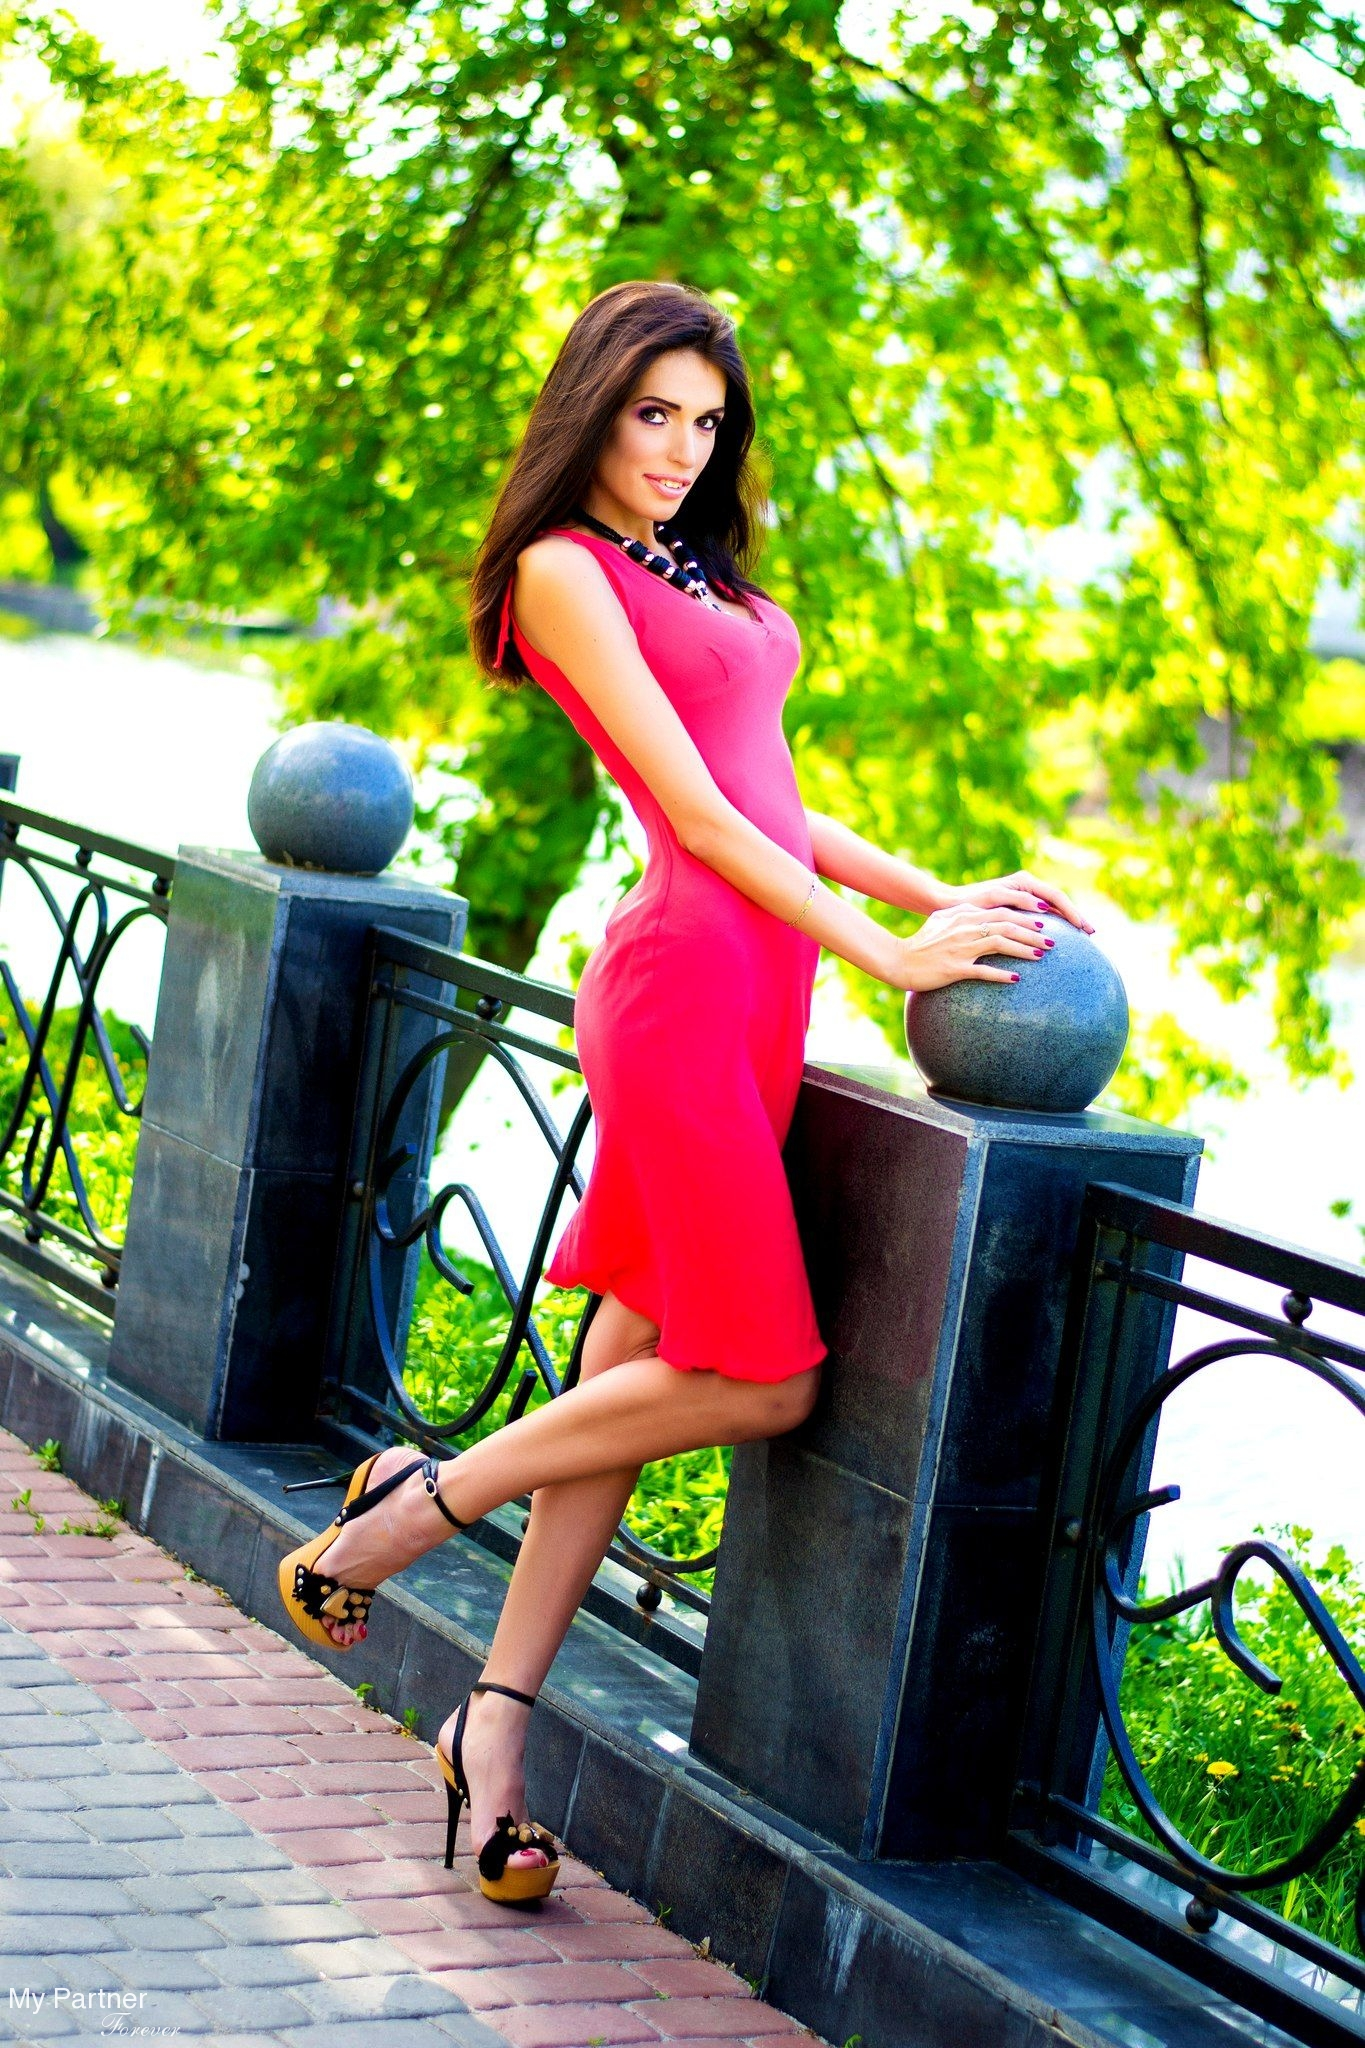 dating sites for athletes A social networking site that's made with kids in mind  anything from sports to television to pop culture is discussed daily in our chat rooms.